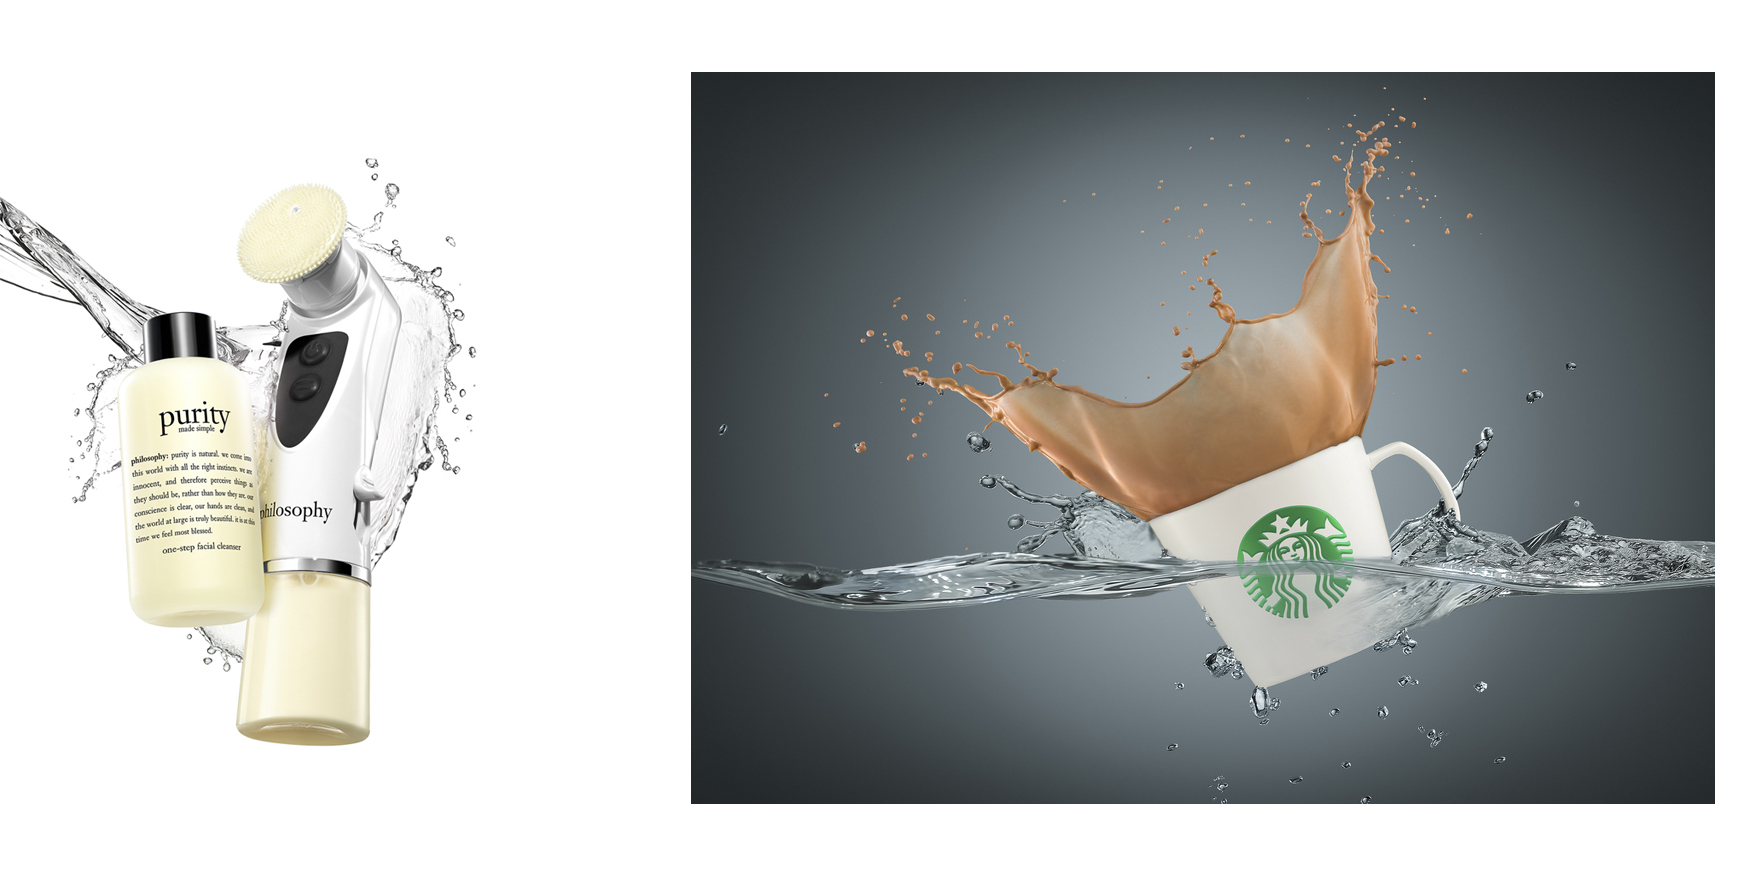 The image on the left is an example of splash being used to speak to the cleansing nature of the product. The image on the right is an example of someone using splash techniques just because they can.